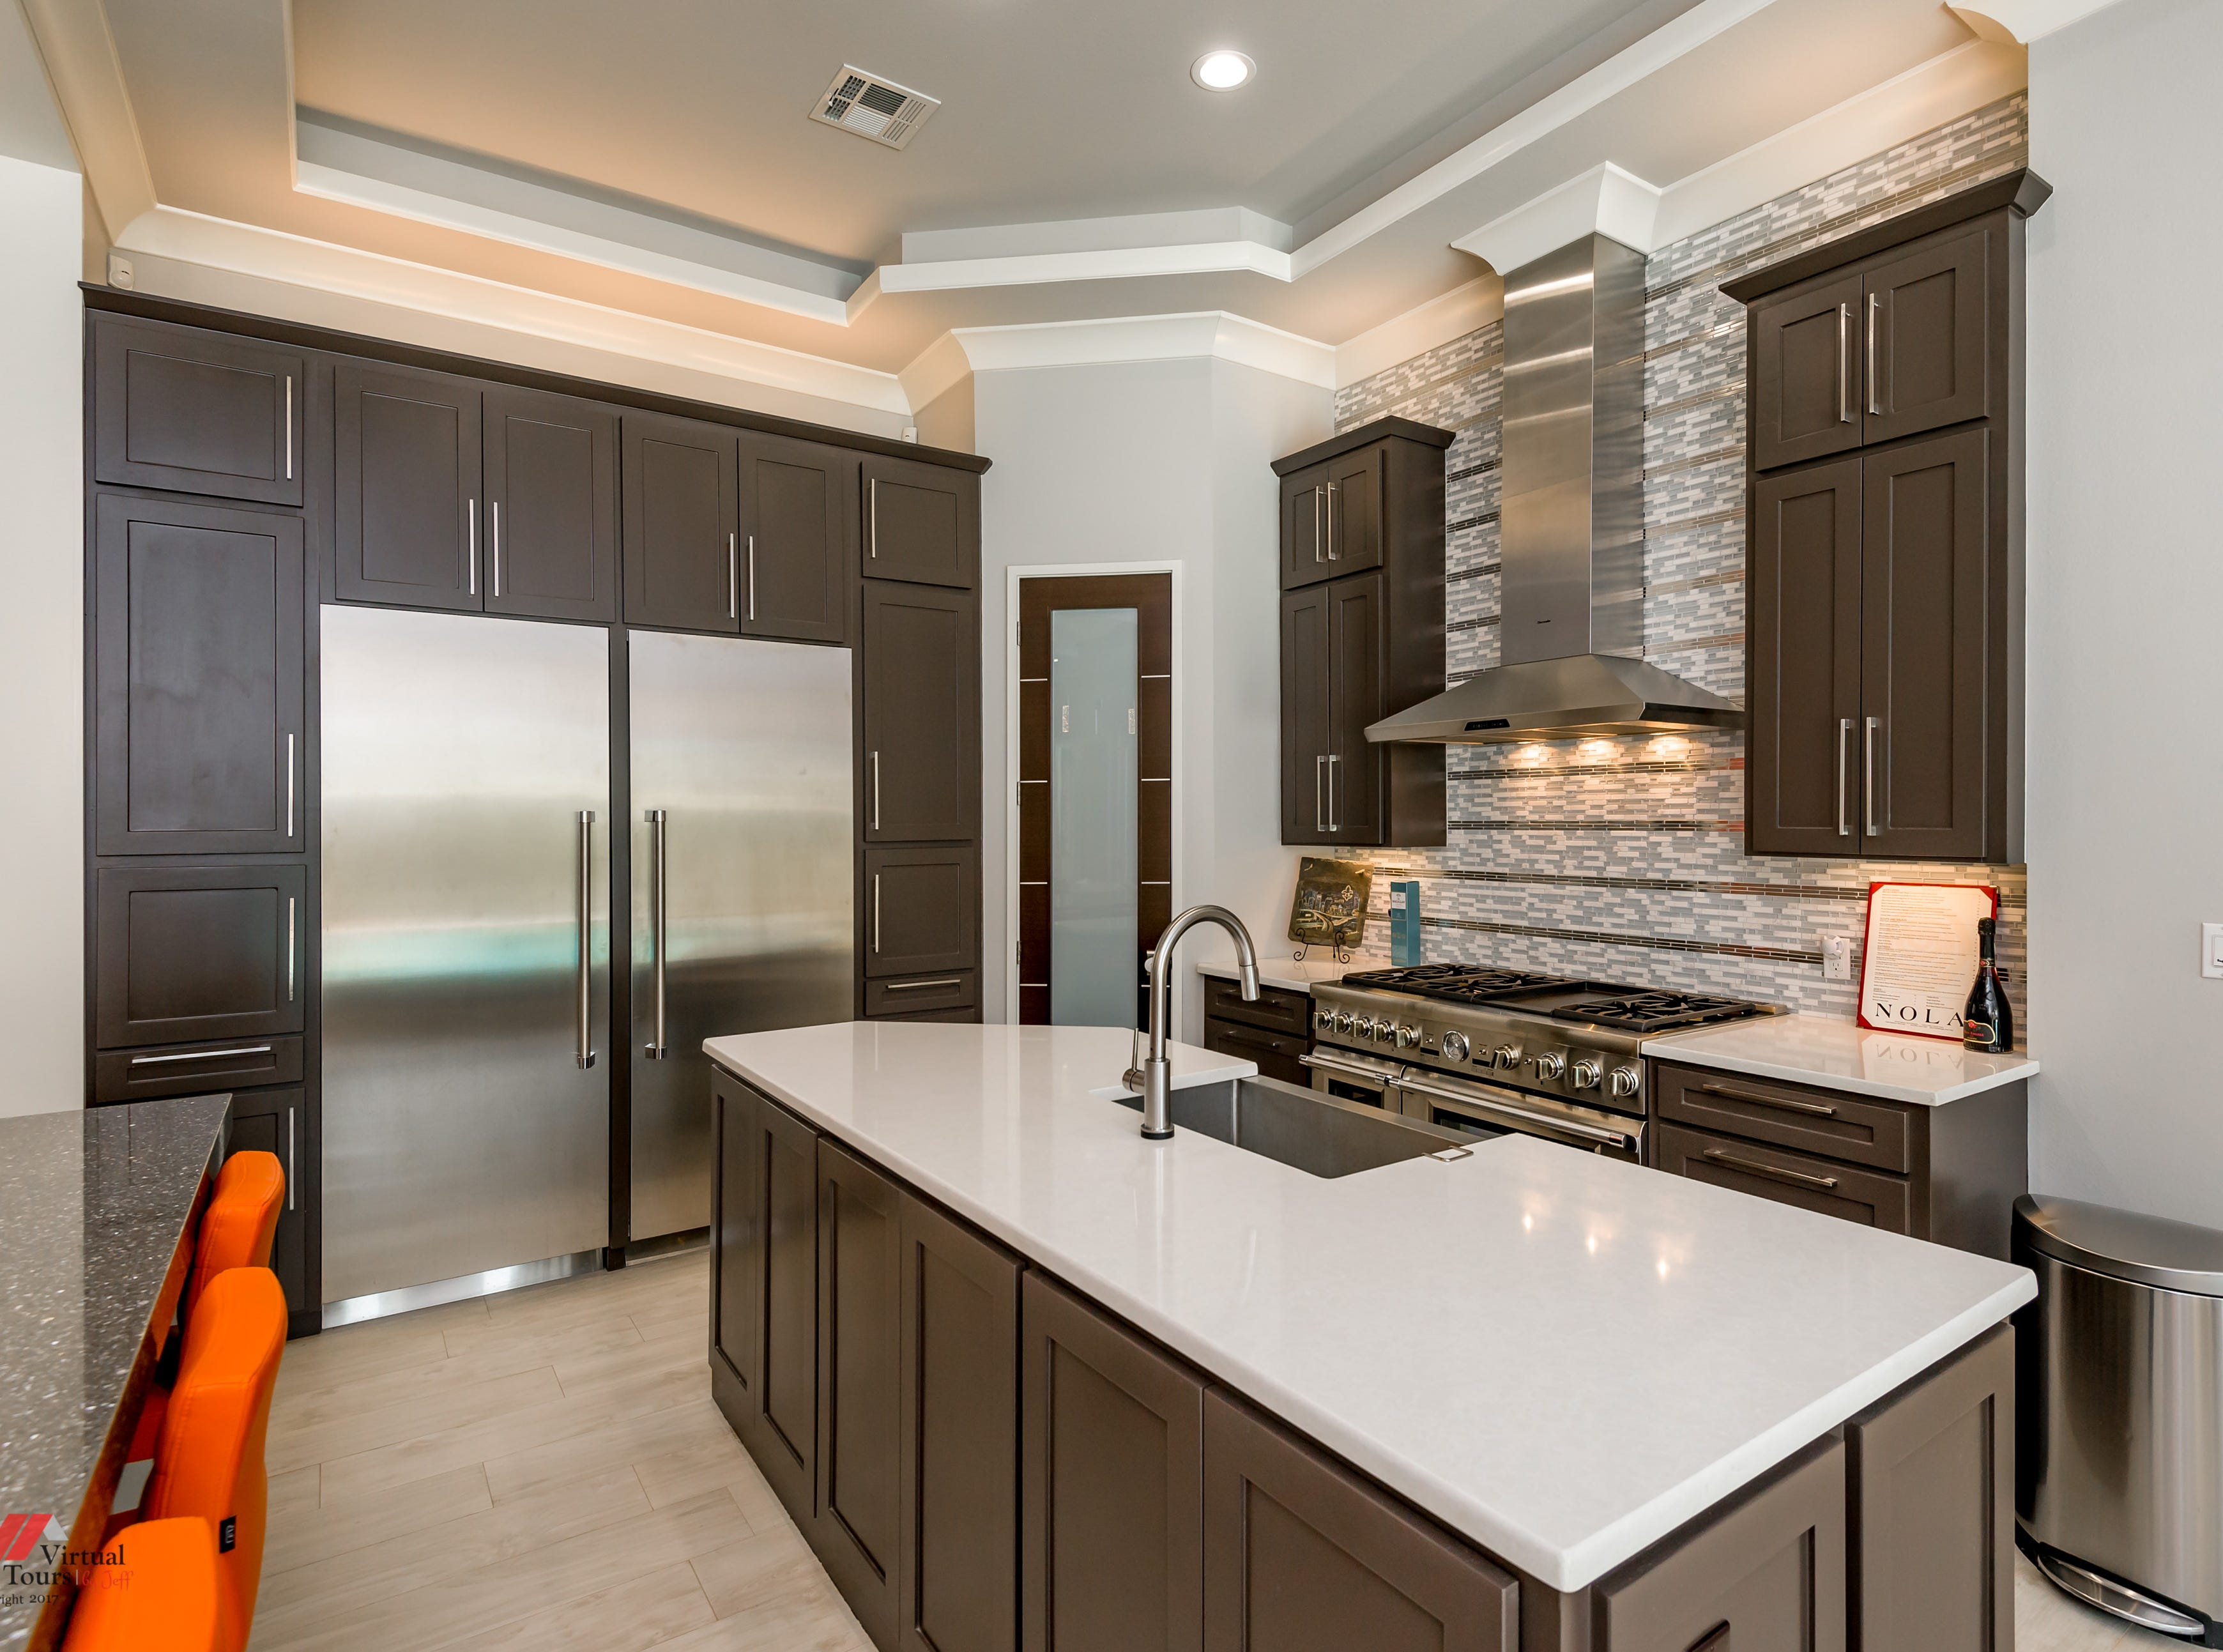 The ultra-modern kitchen features sleek design and special lighting touches.